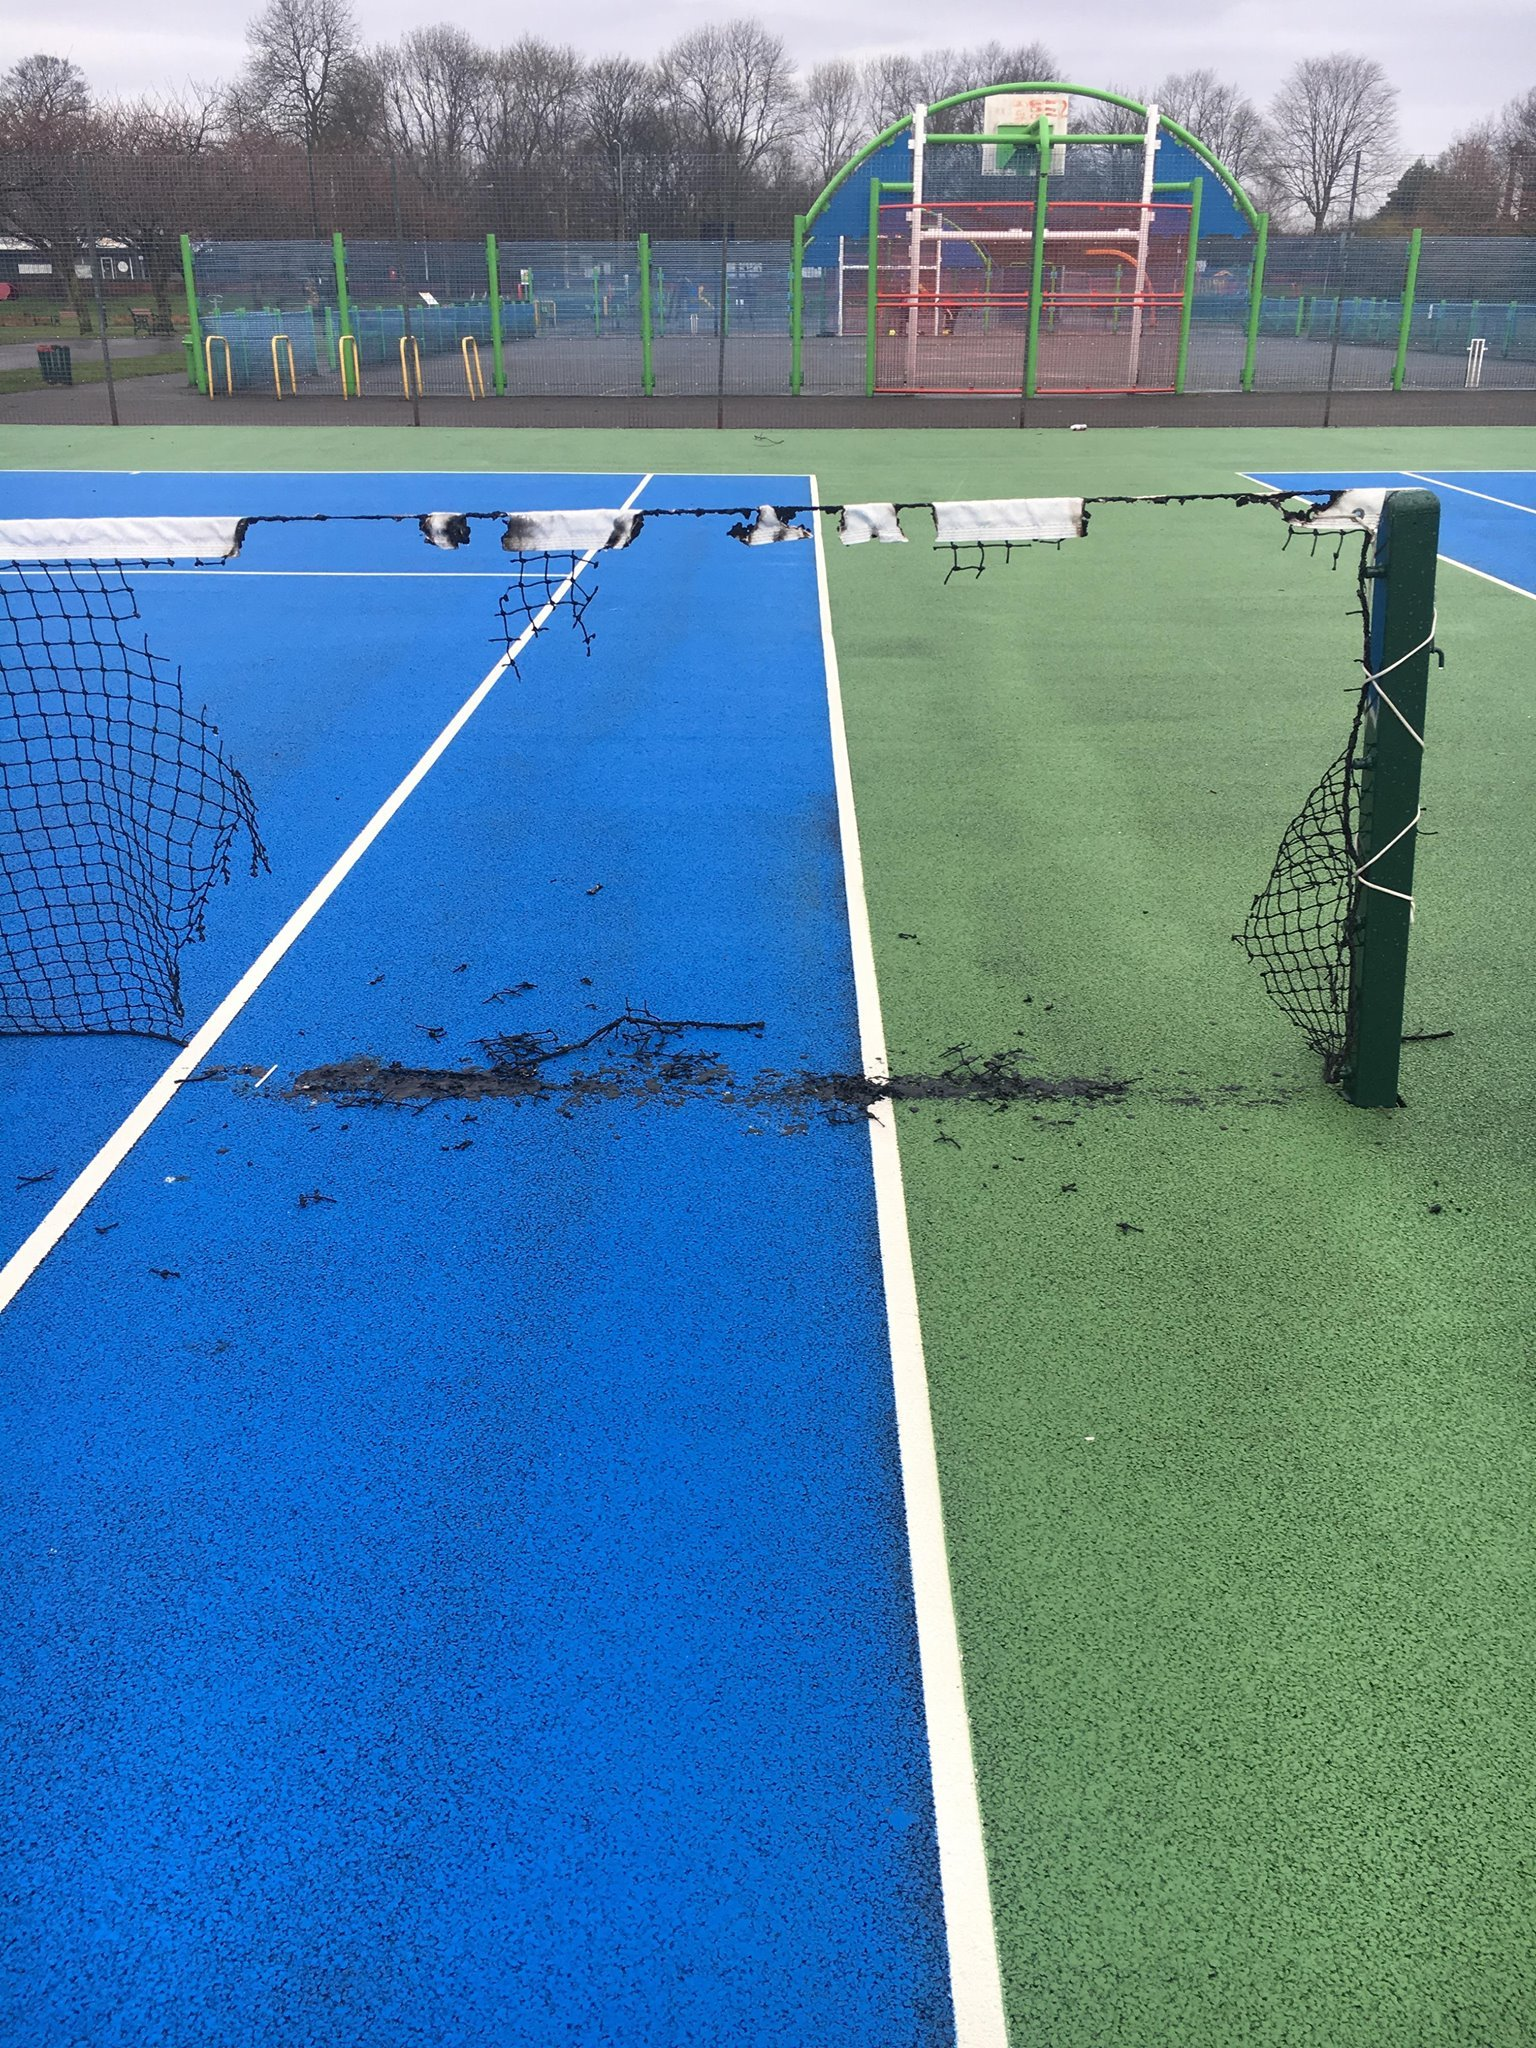 VANDALISM: The sports net at St Mary's Park was broken